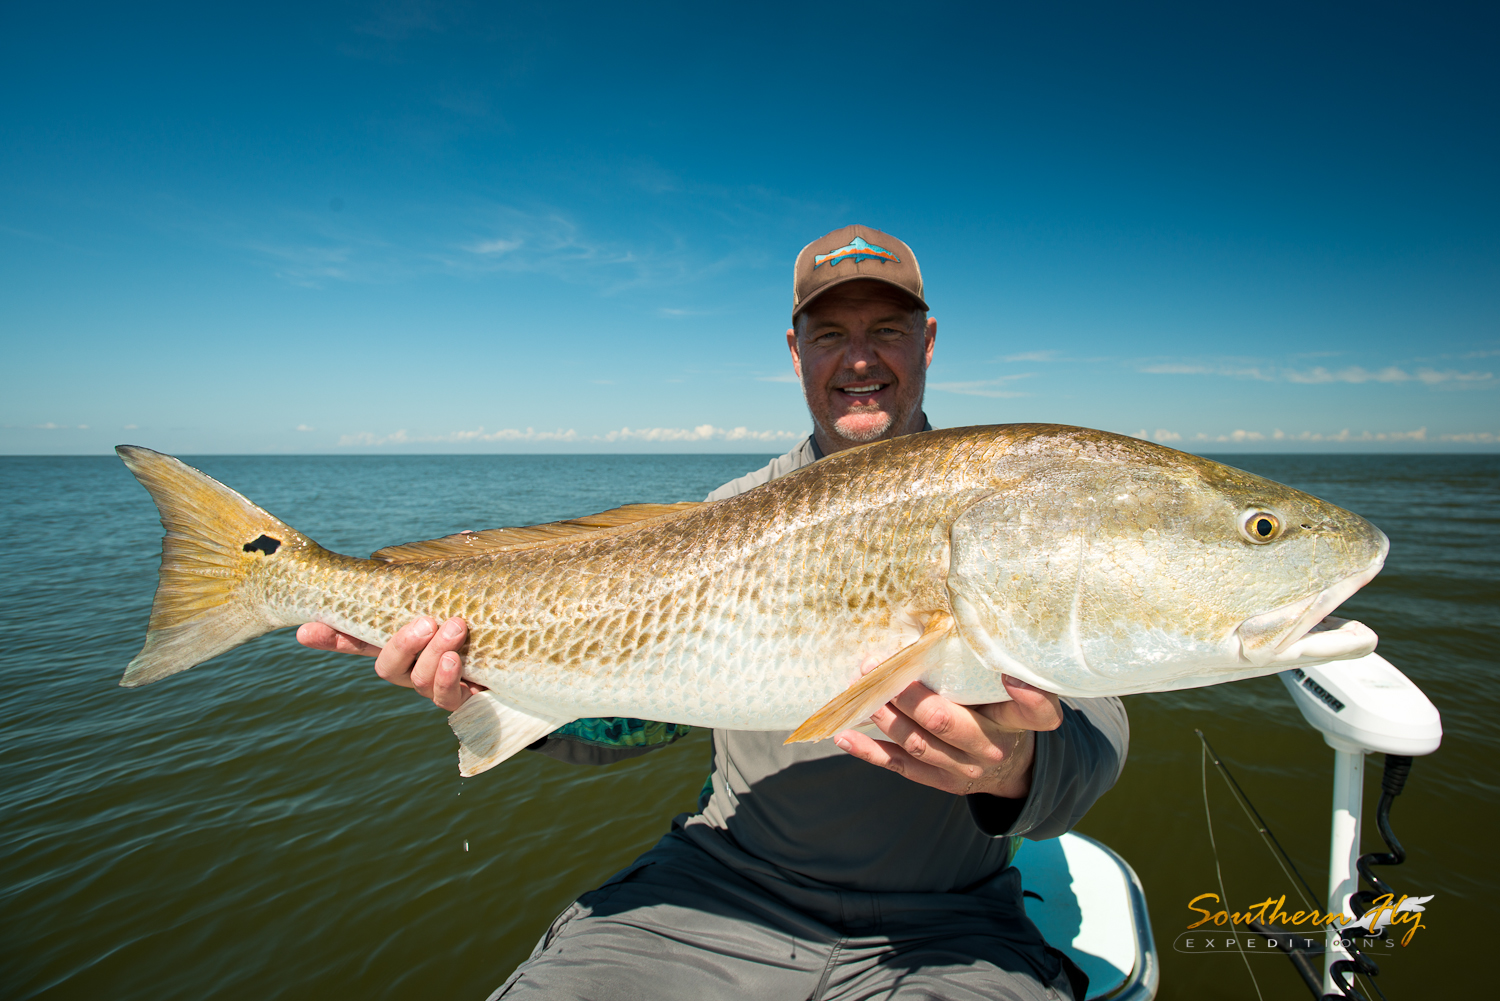 Southern Fly Expeditions fly fishing for redfish in Louisiana - when is the best time to fly fish in louisiana